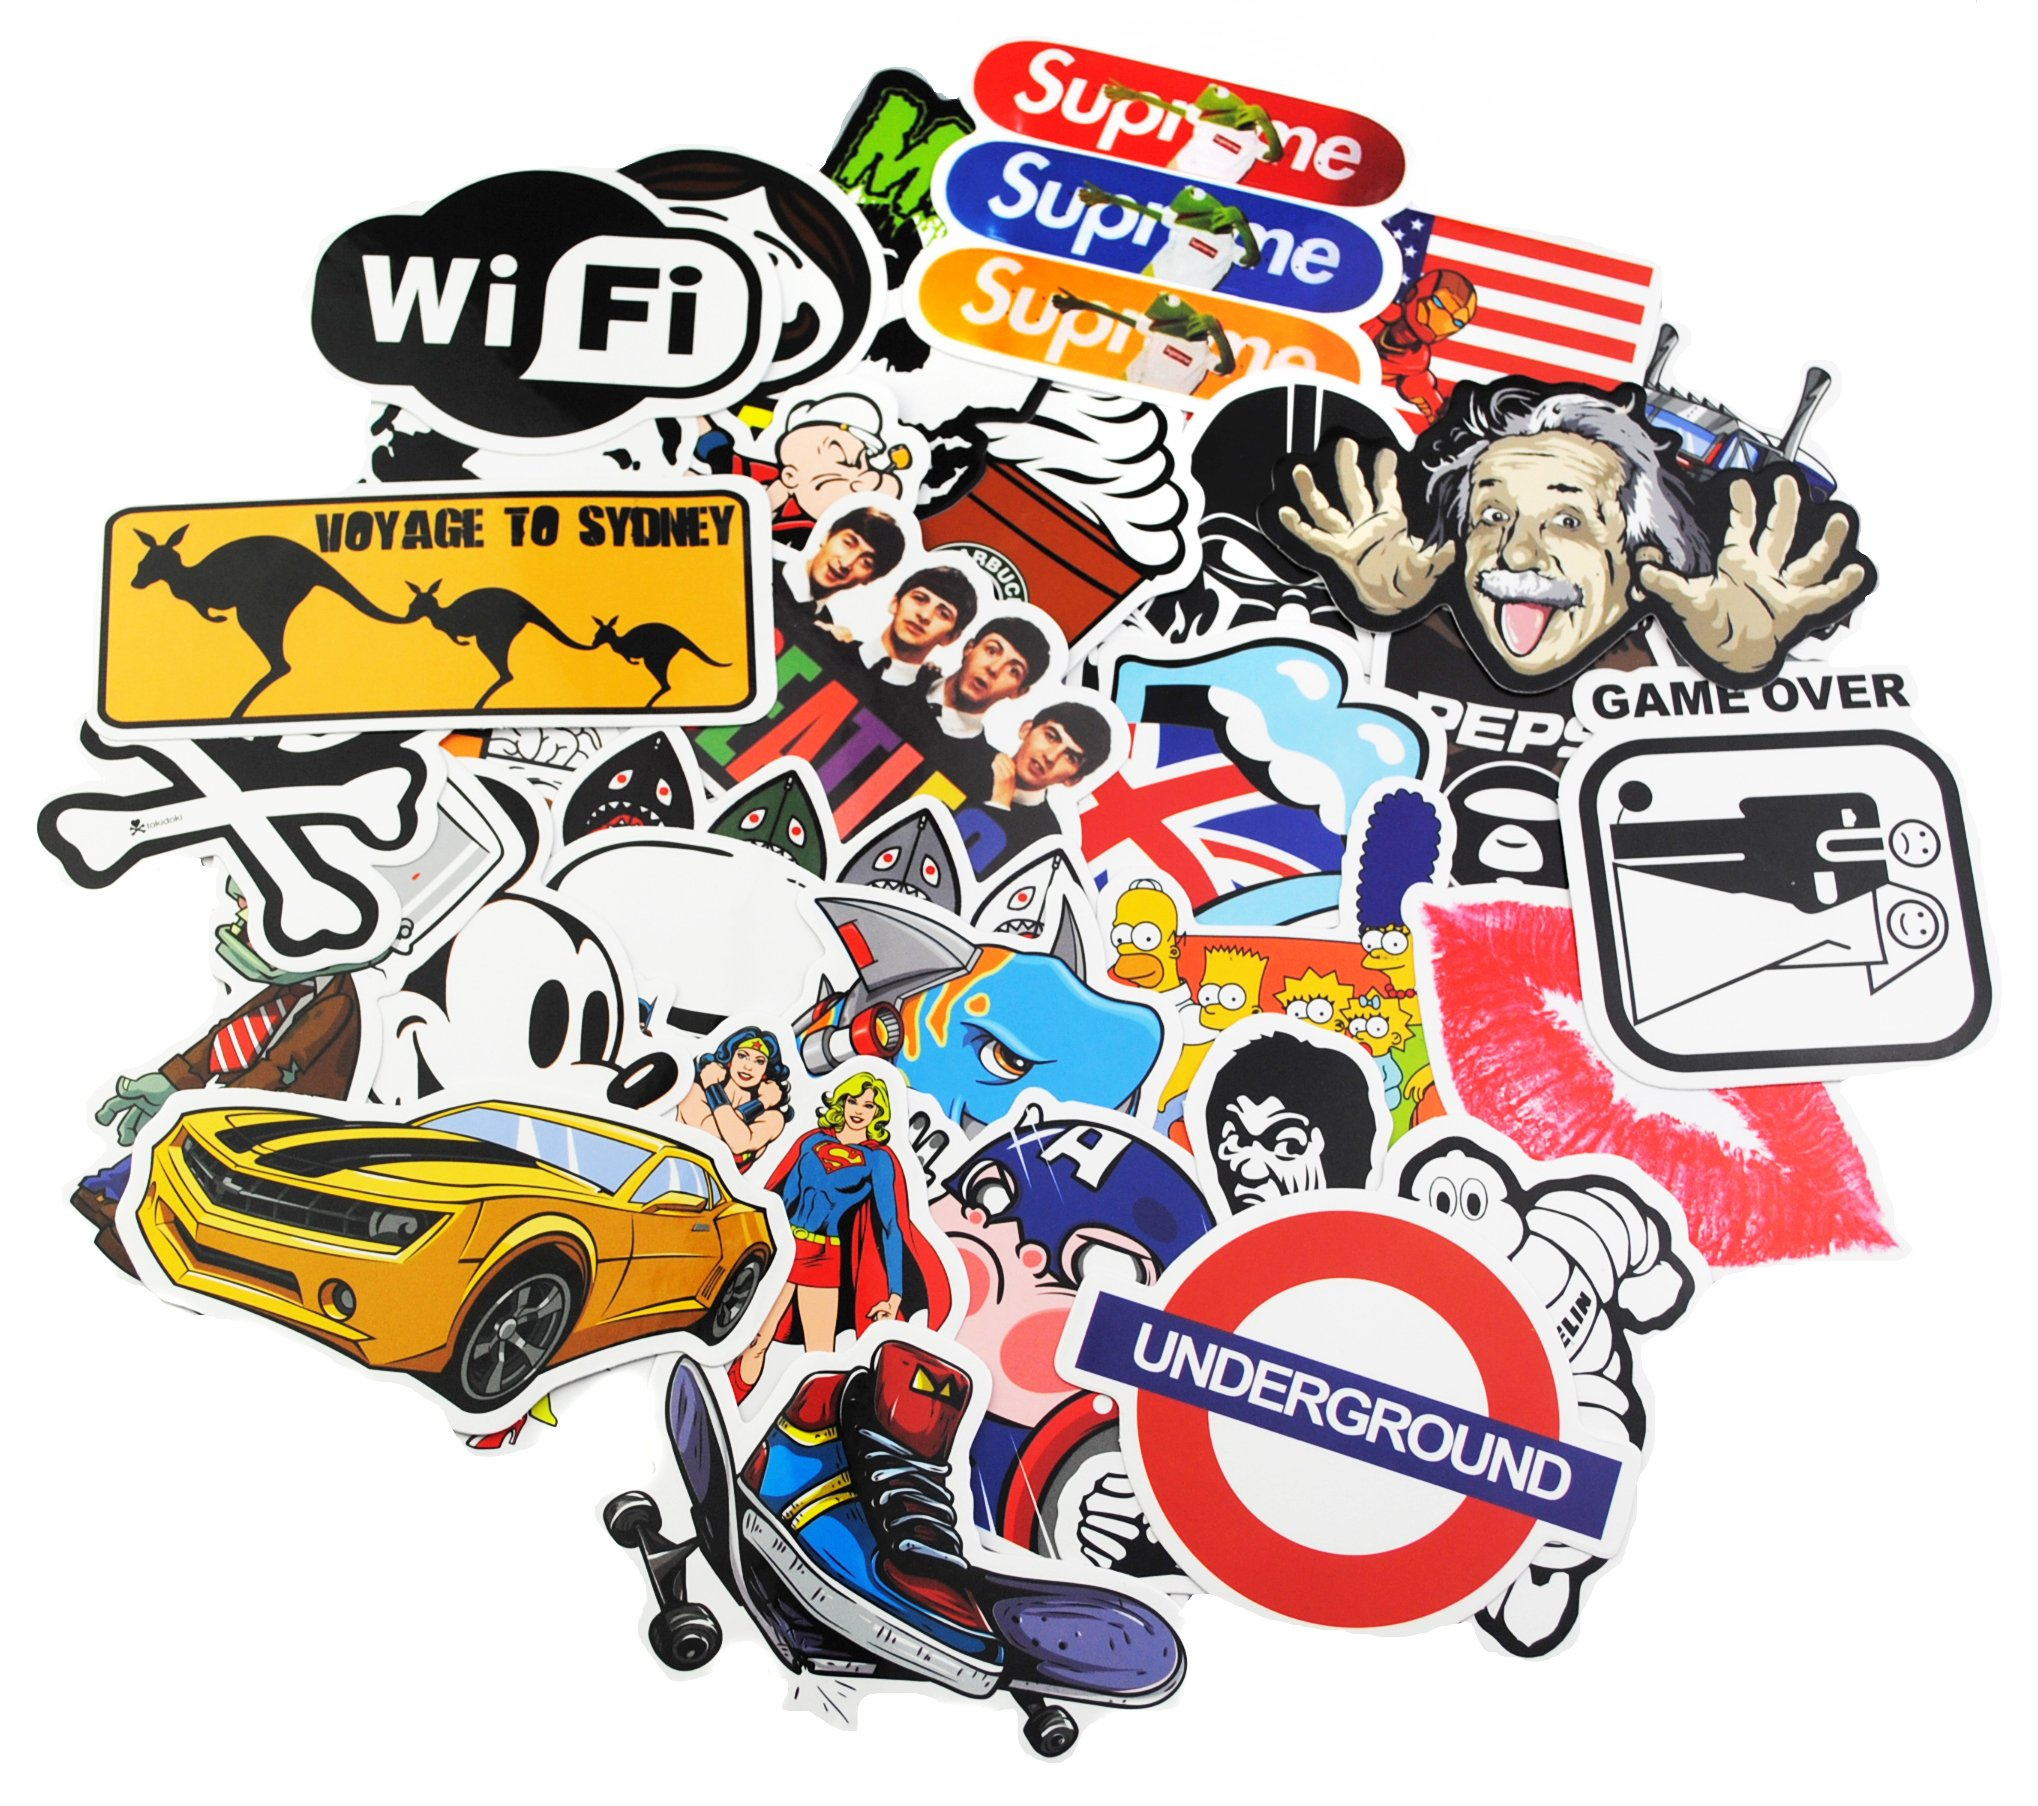 KONLOY Sticker Pack 200-Pcs Sticker Decals Vinyls for Laptop,Kids,Cars,Motorcycle,Bicycle,Skateboard Luggage,Bumper Stickers Hippie Decals bomb Waterproof (200Pcs)